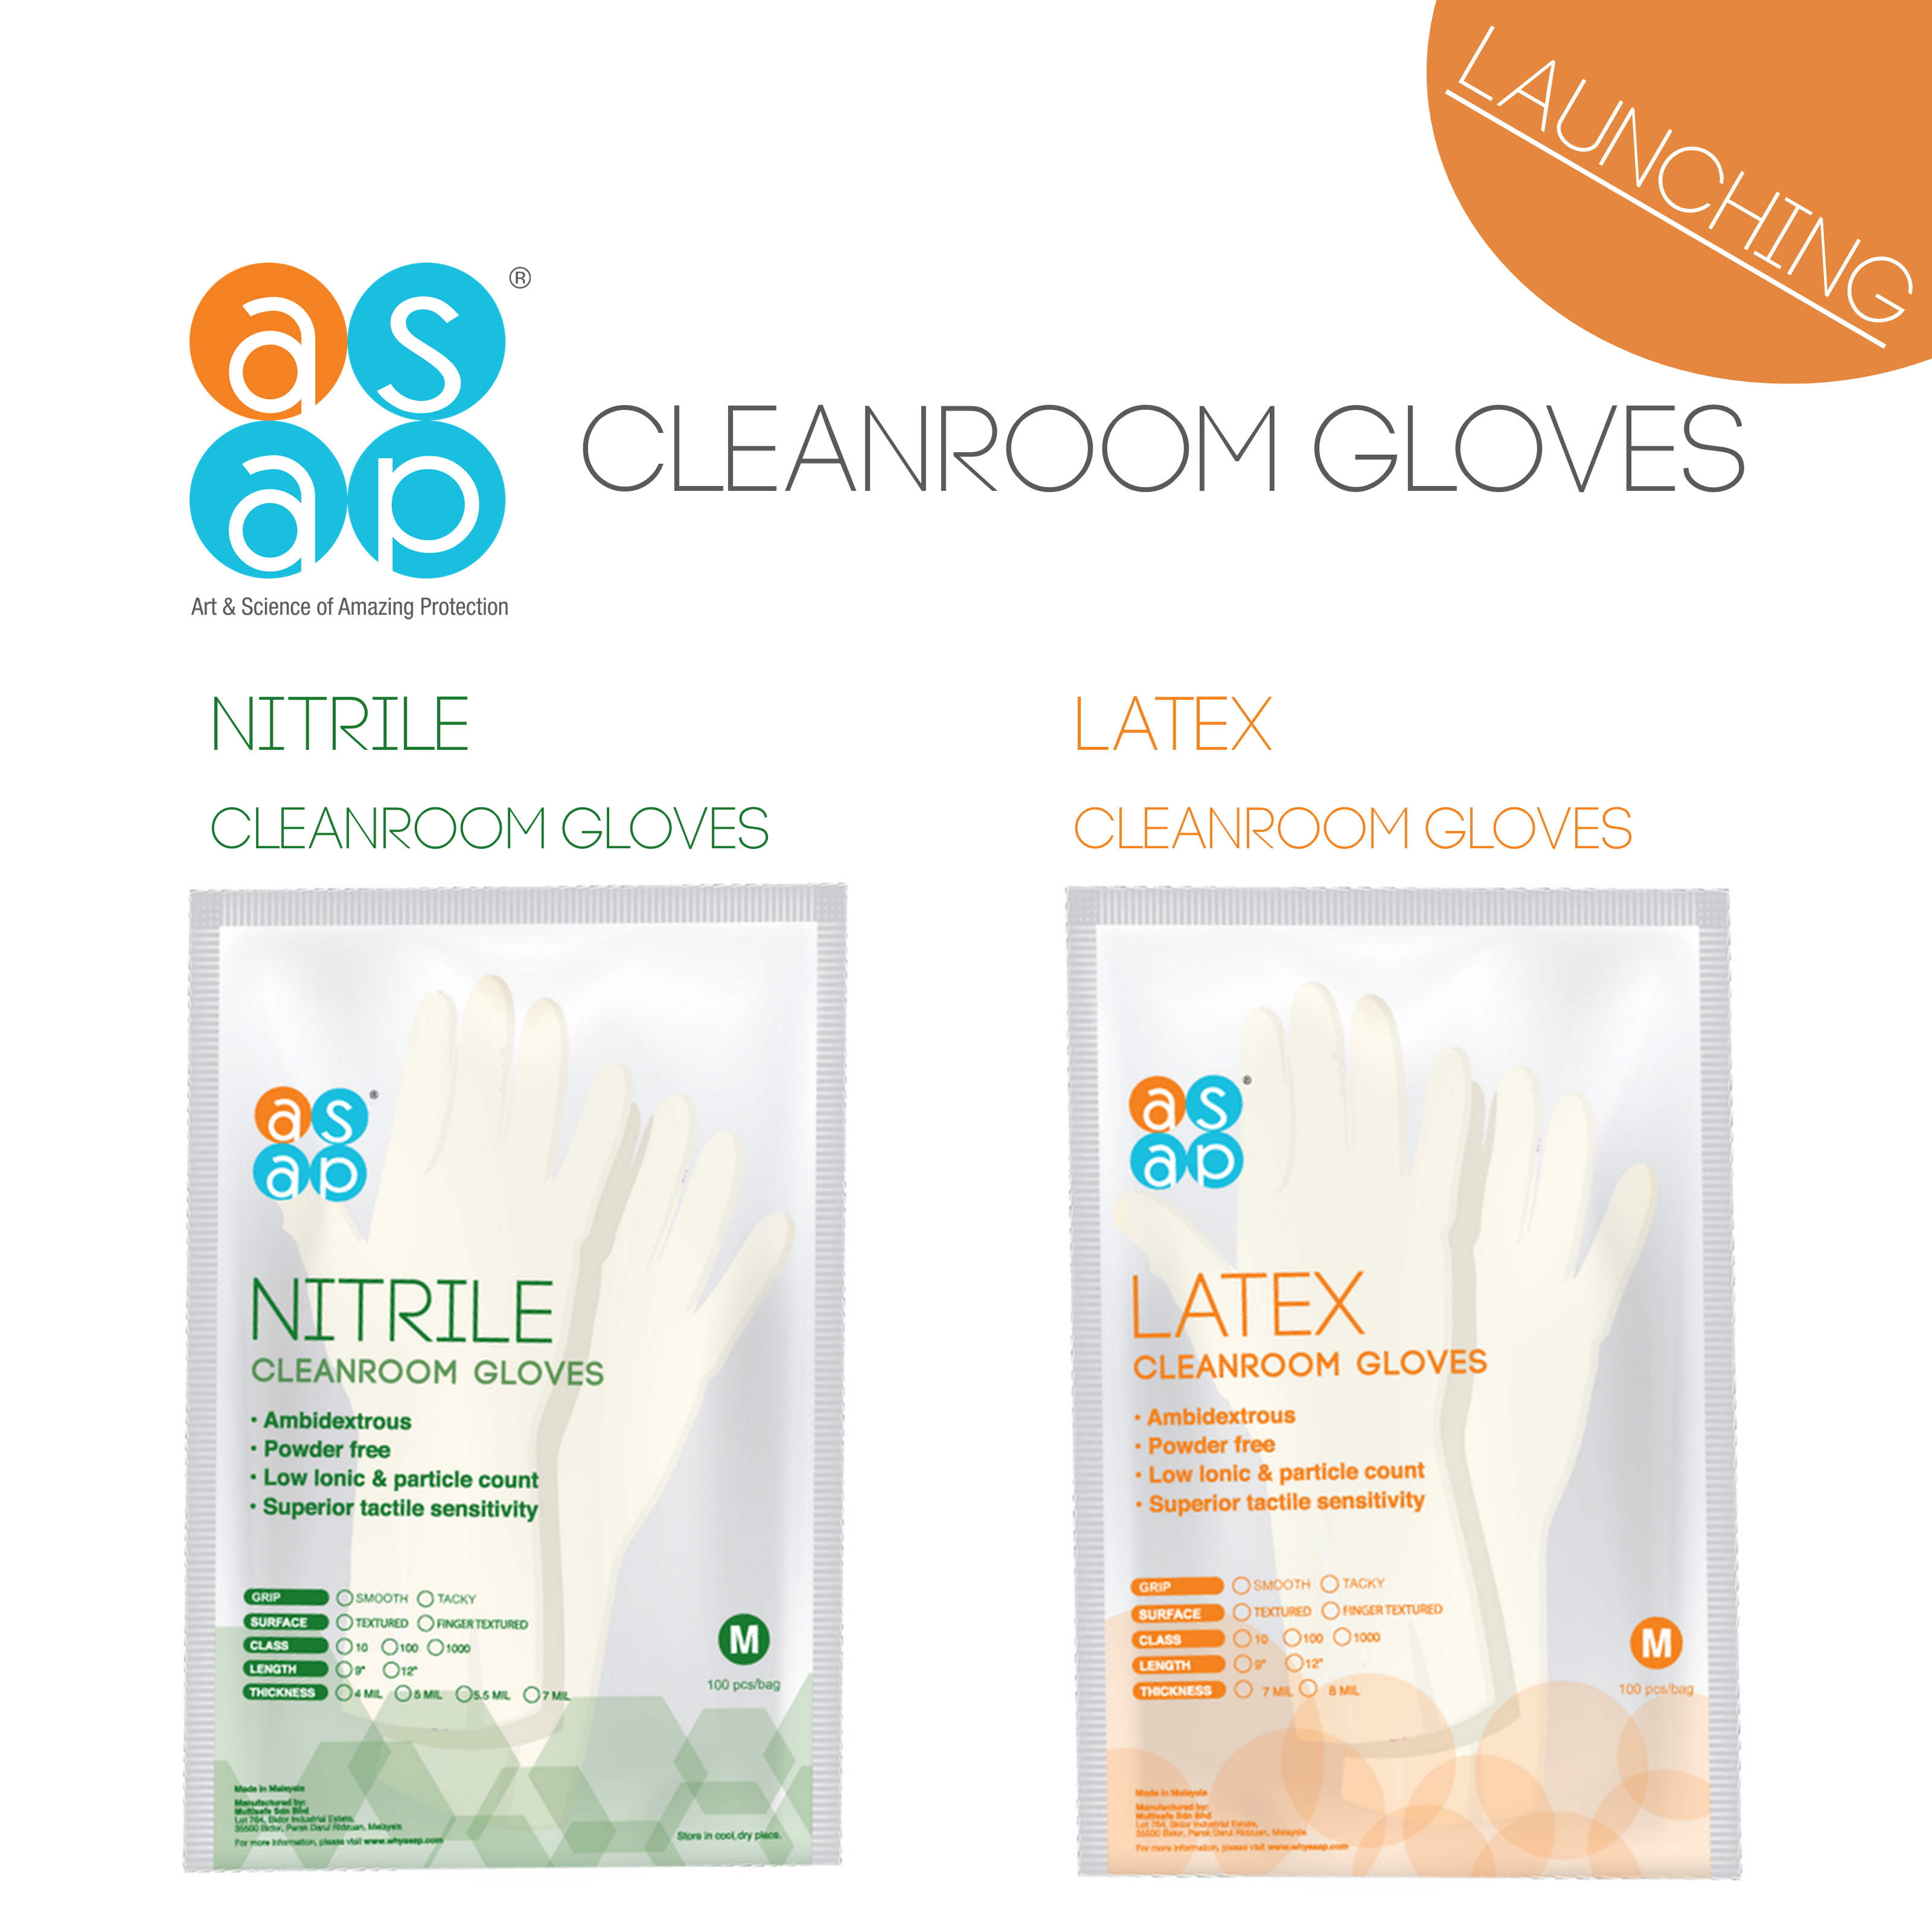 ASAP Innovations UK laucnhes its bestselling Cleanroom gloves to the UK market